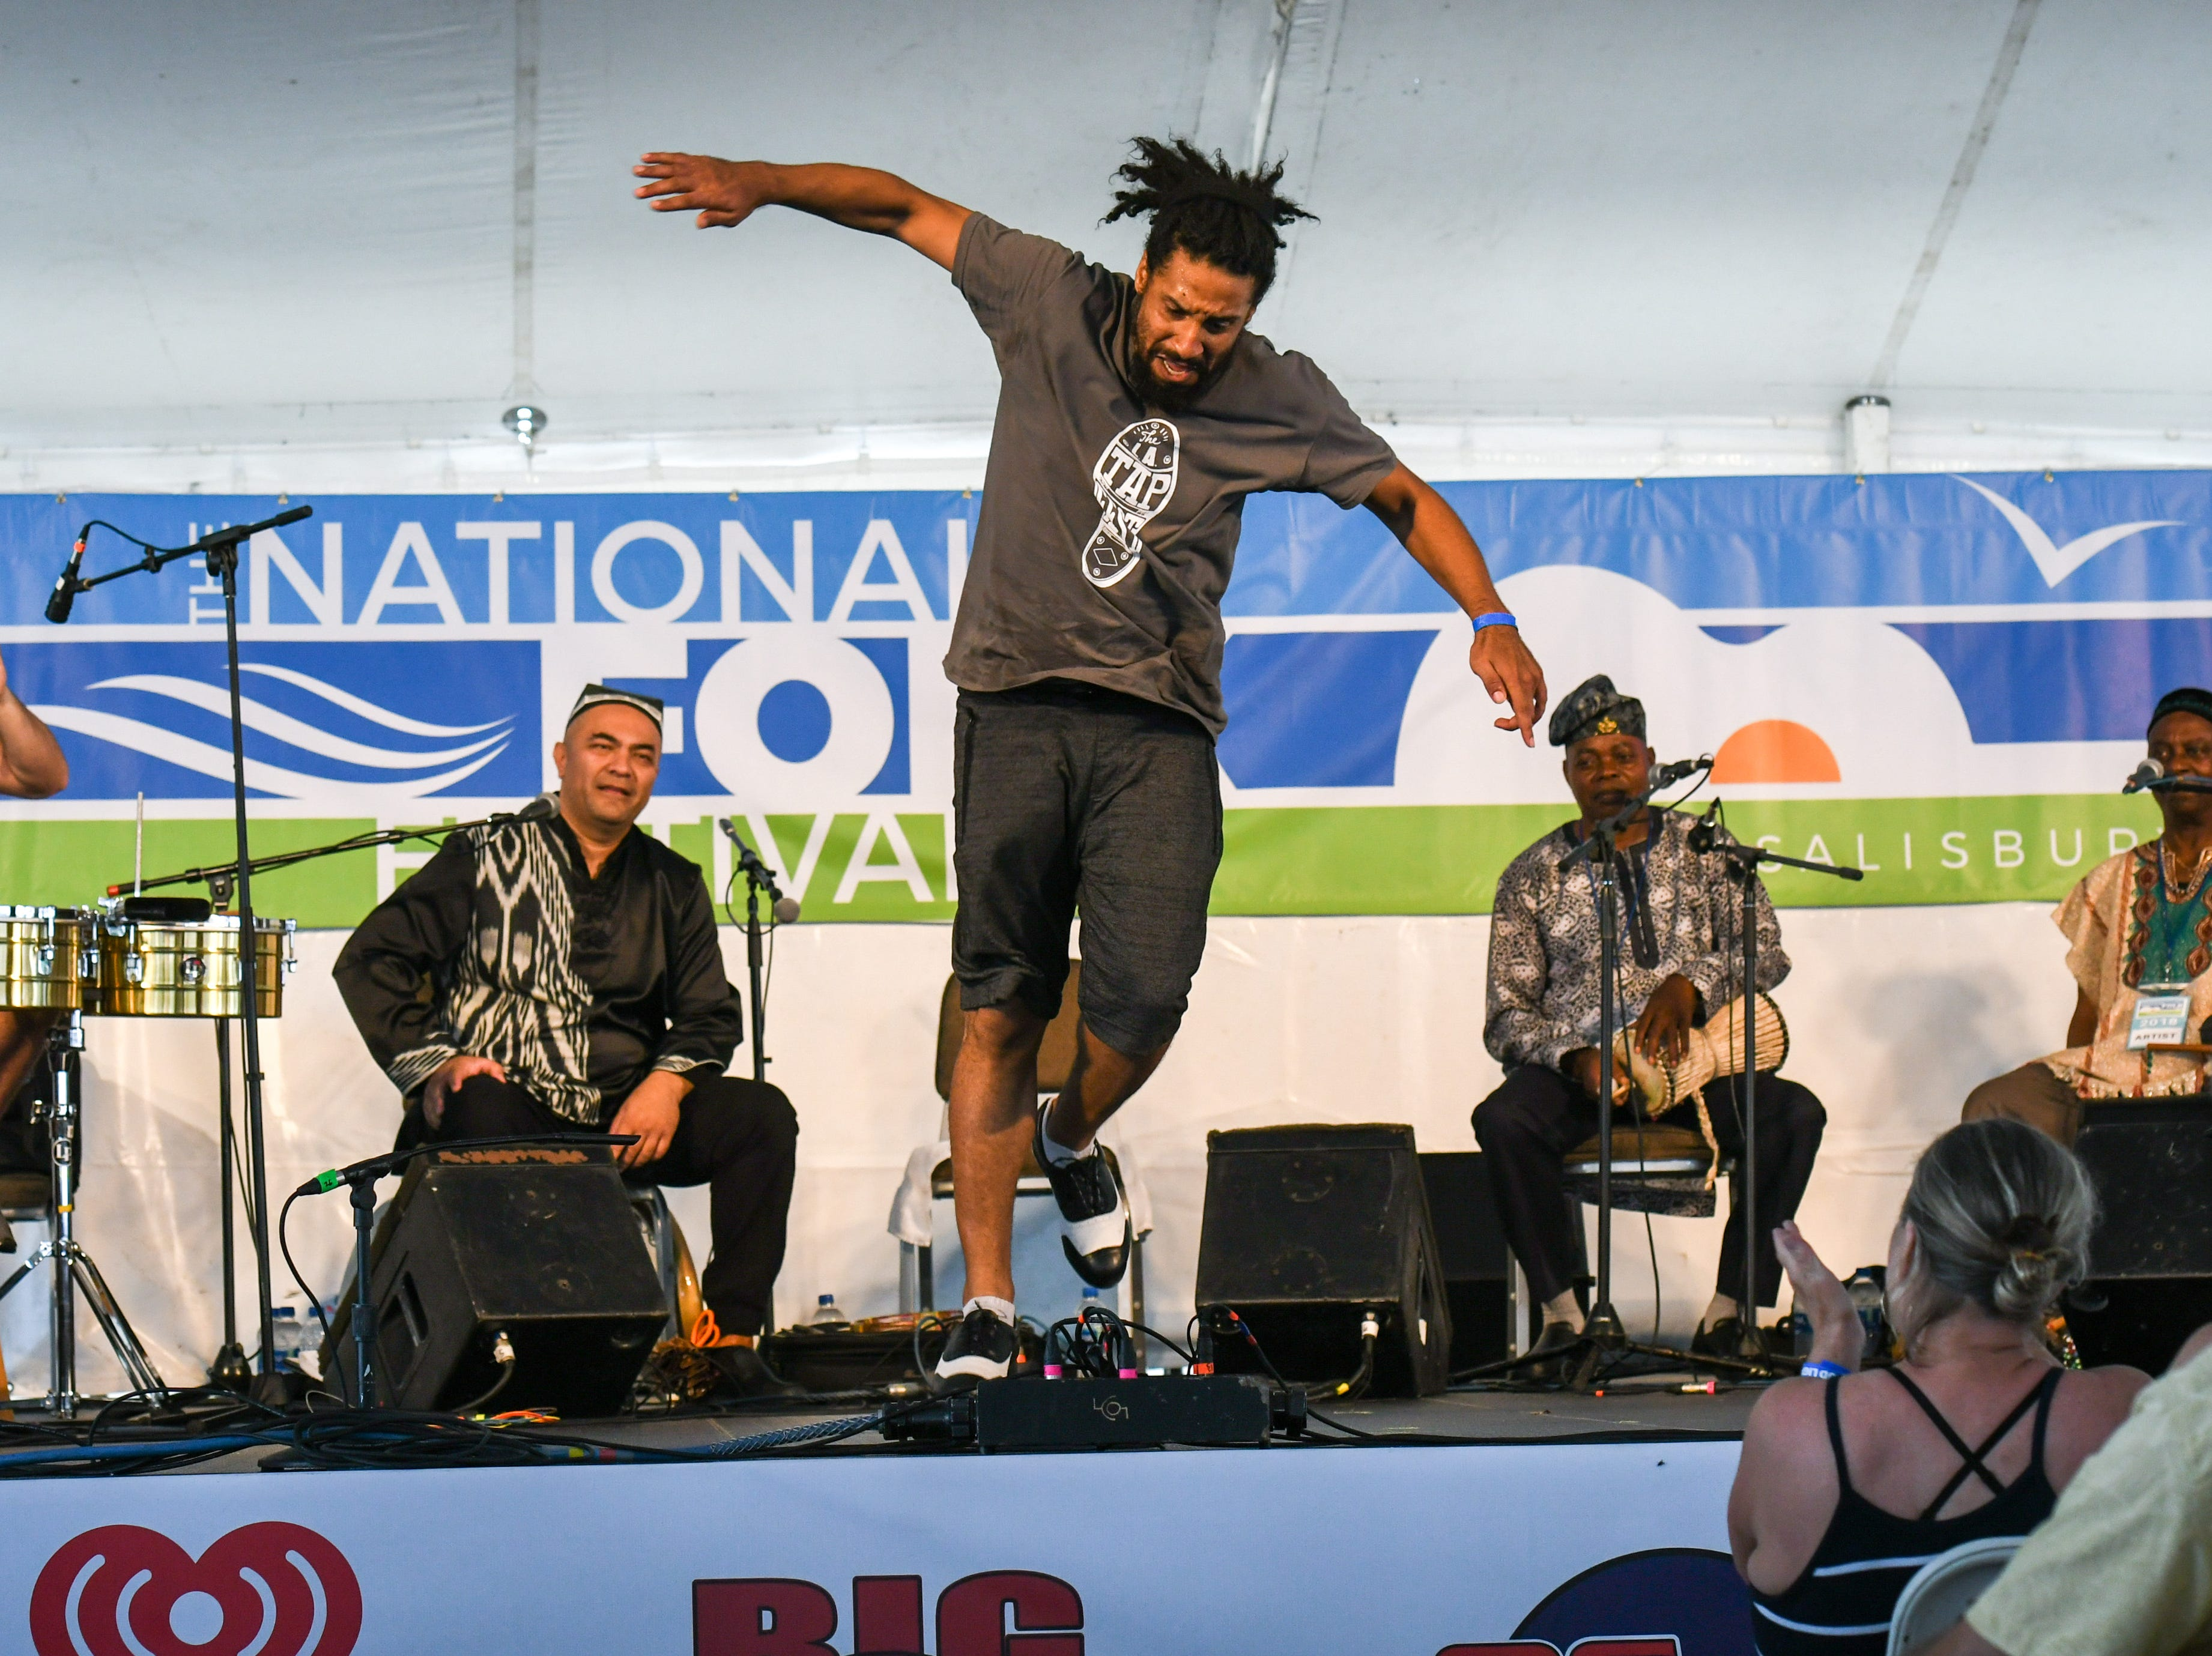 Jason Samuels Smith performs at the National Folk Festival in Salisbury on Saturday, Sept. 8.